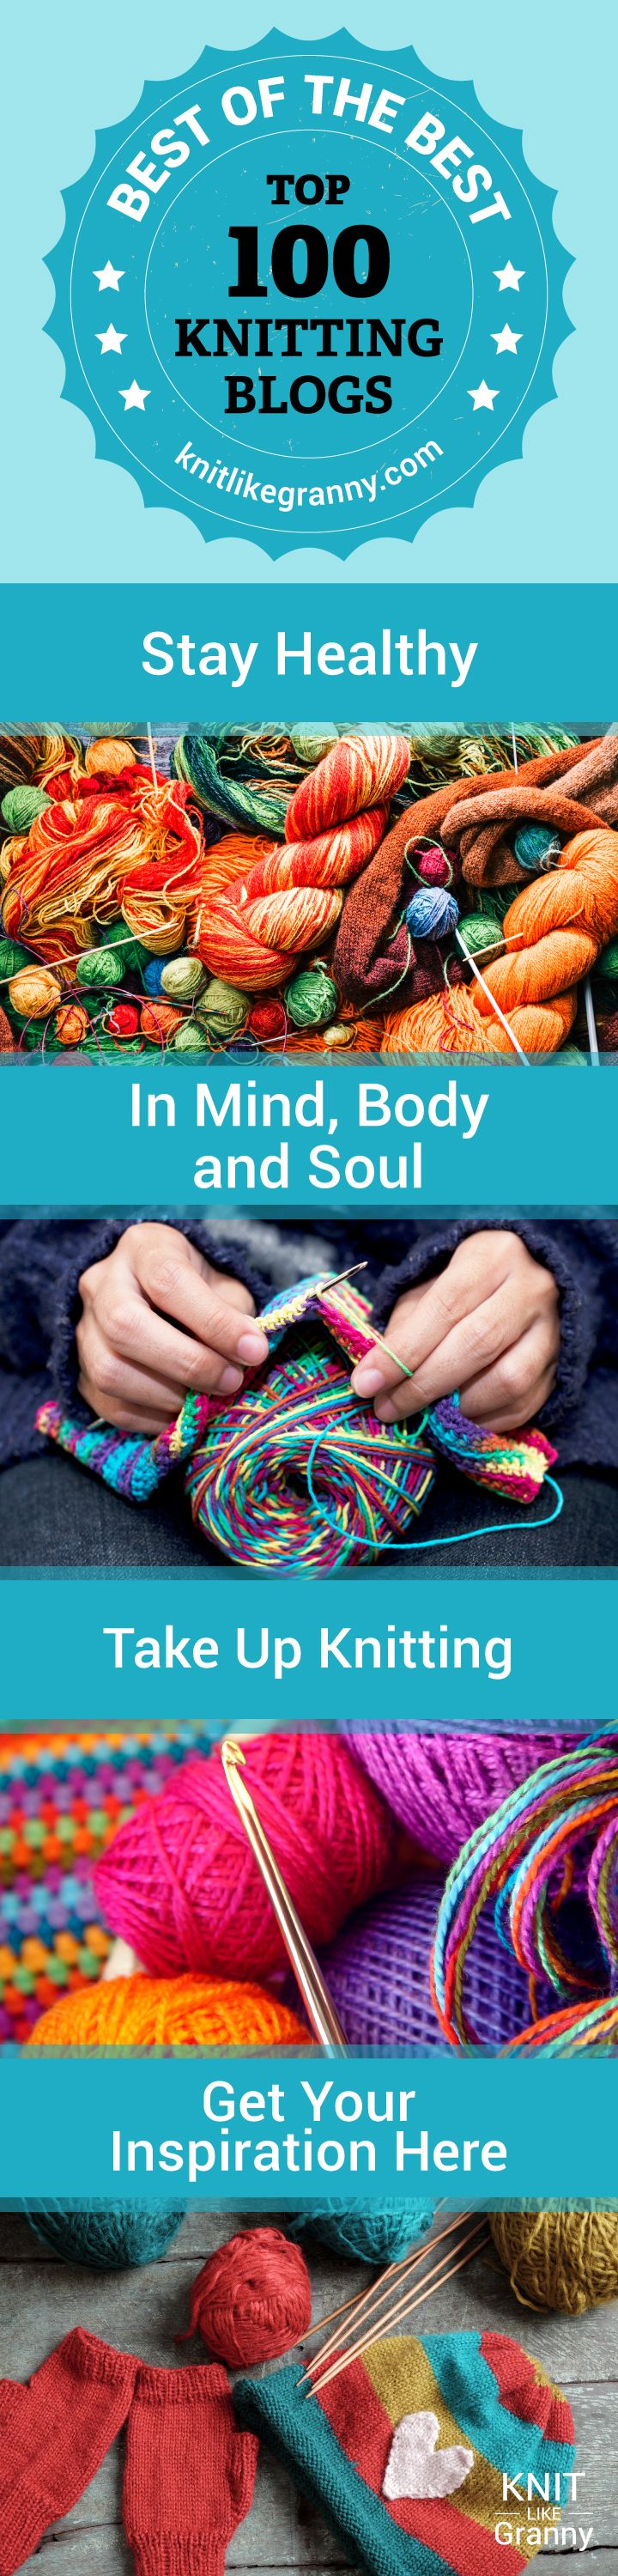 Stay healthy in mind, body and spirit and take up knitting. Find inspiration from our featured knitting bloggers. Knitting helps you to relax, be mindful as it keeps you in the present. It can lower blood pressure and the levels of cortisol in your brain that induces stress. Knitting is so rewarding not only for your health but your self esteem too!#knitting #knit #healthyliving